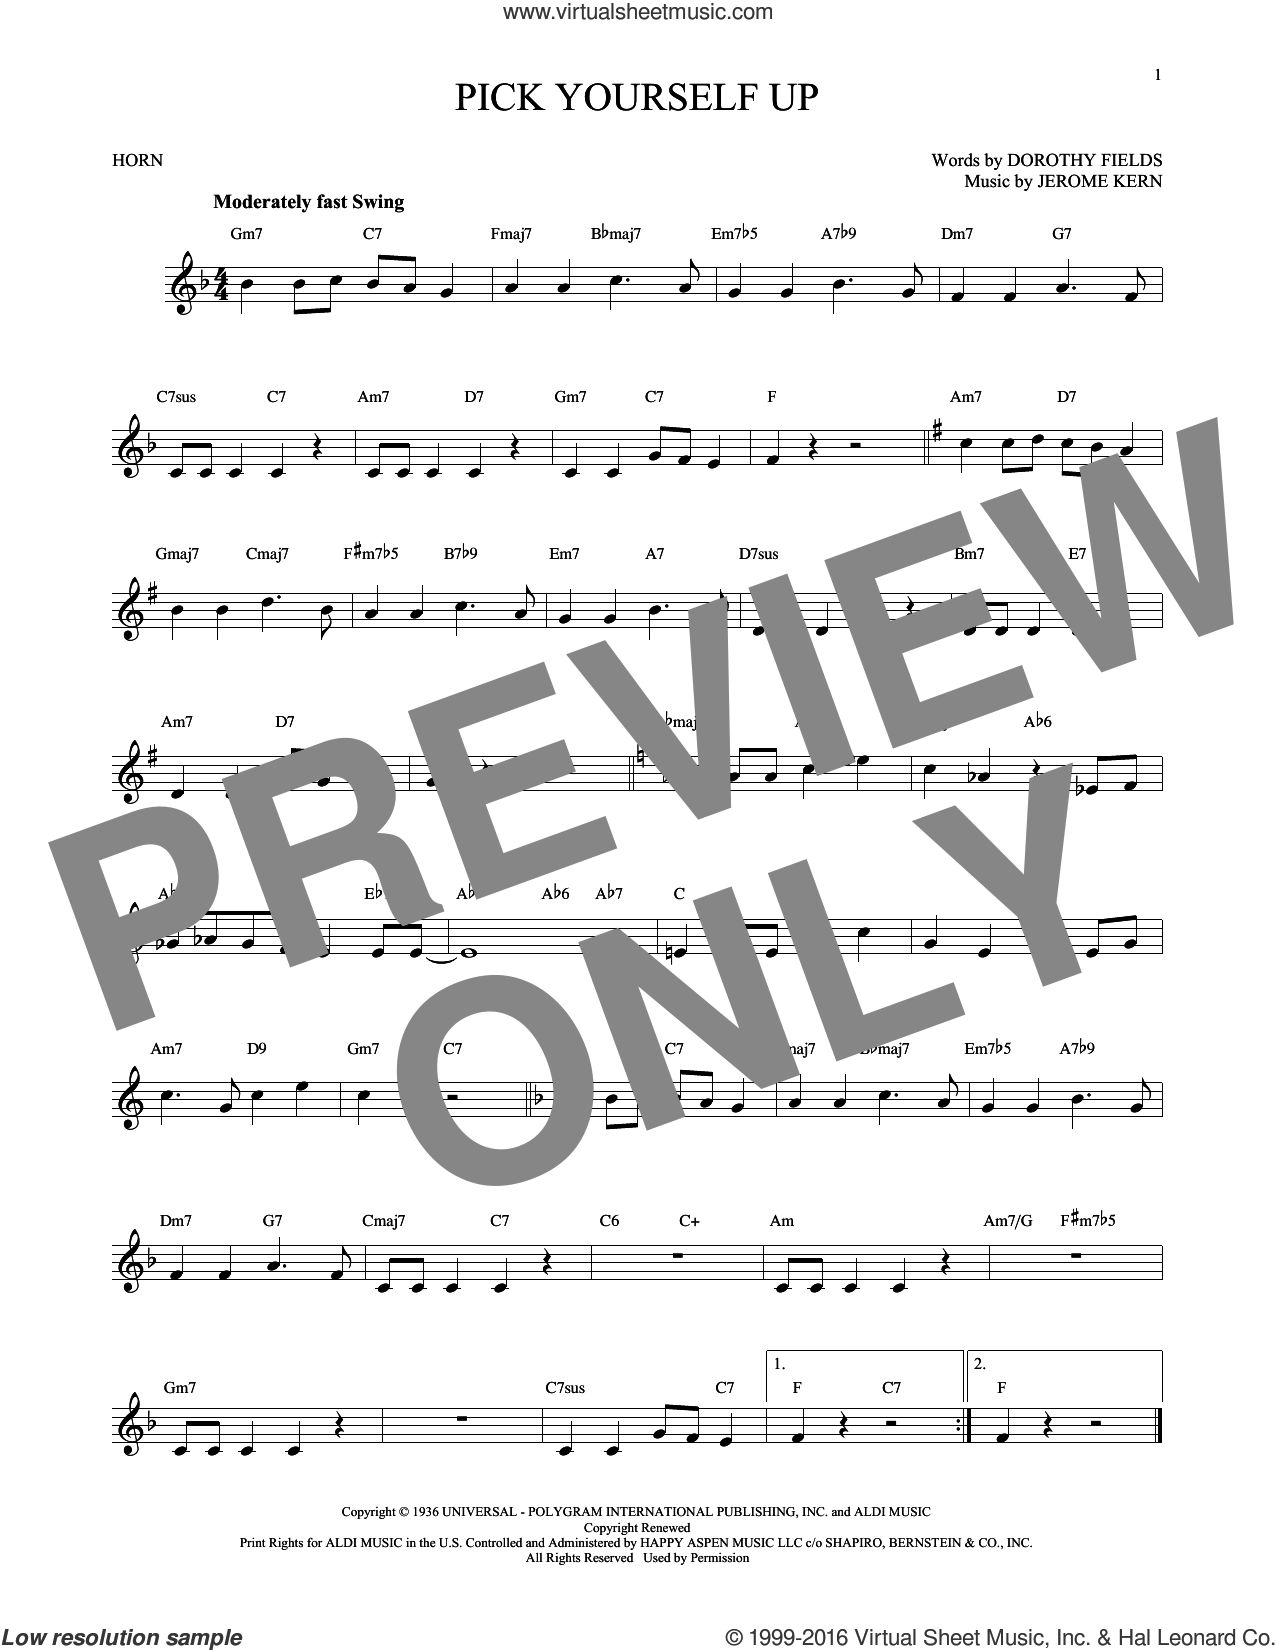 Pick Yourself Up sheet music for horn solo by Jerome Kern and Dorothy Fields, intermediate skill level